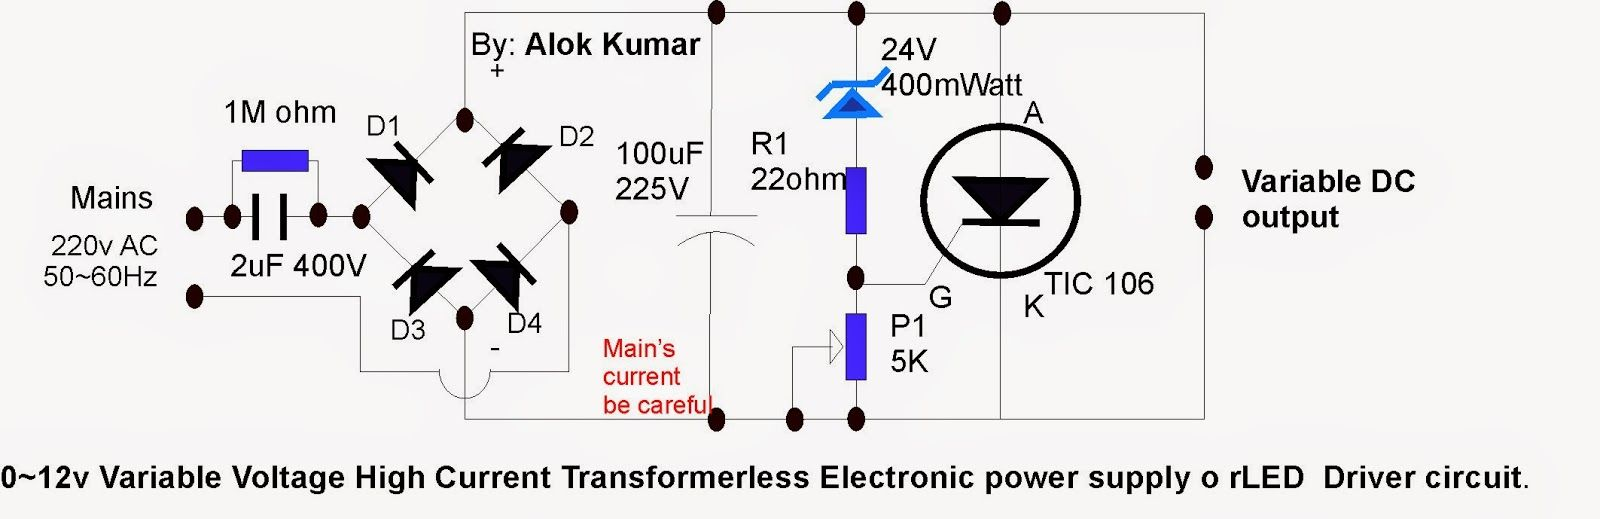 Electronic Circuits Transformerless Power Supply Led Drivers Single Cell Voltage Monitor Circuit Diagram Battery Chargers Solar How To Make 0 12v Variable High Current